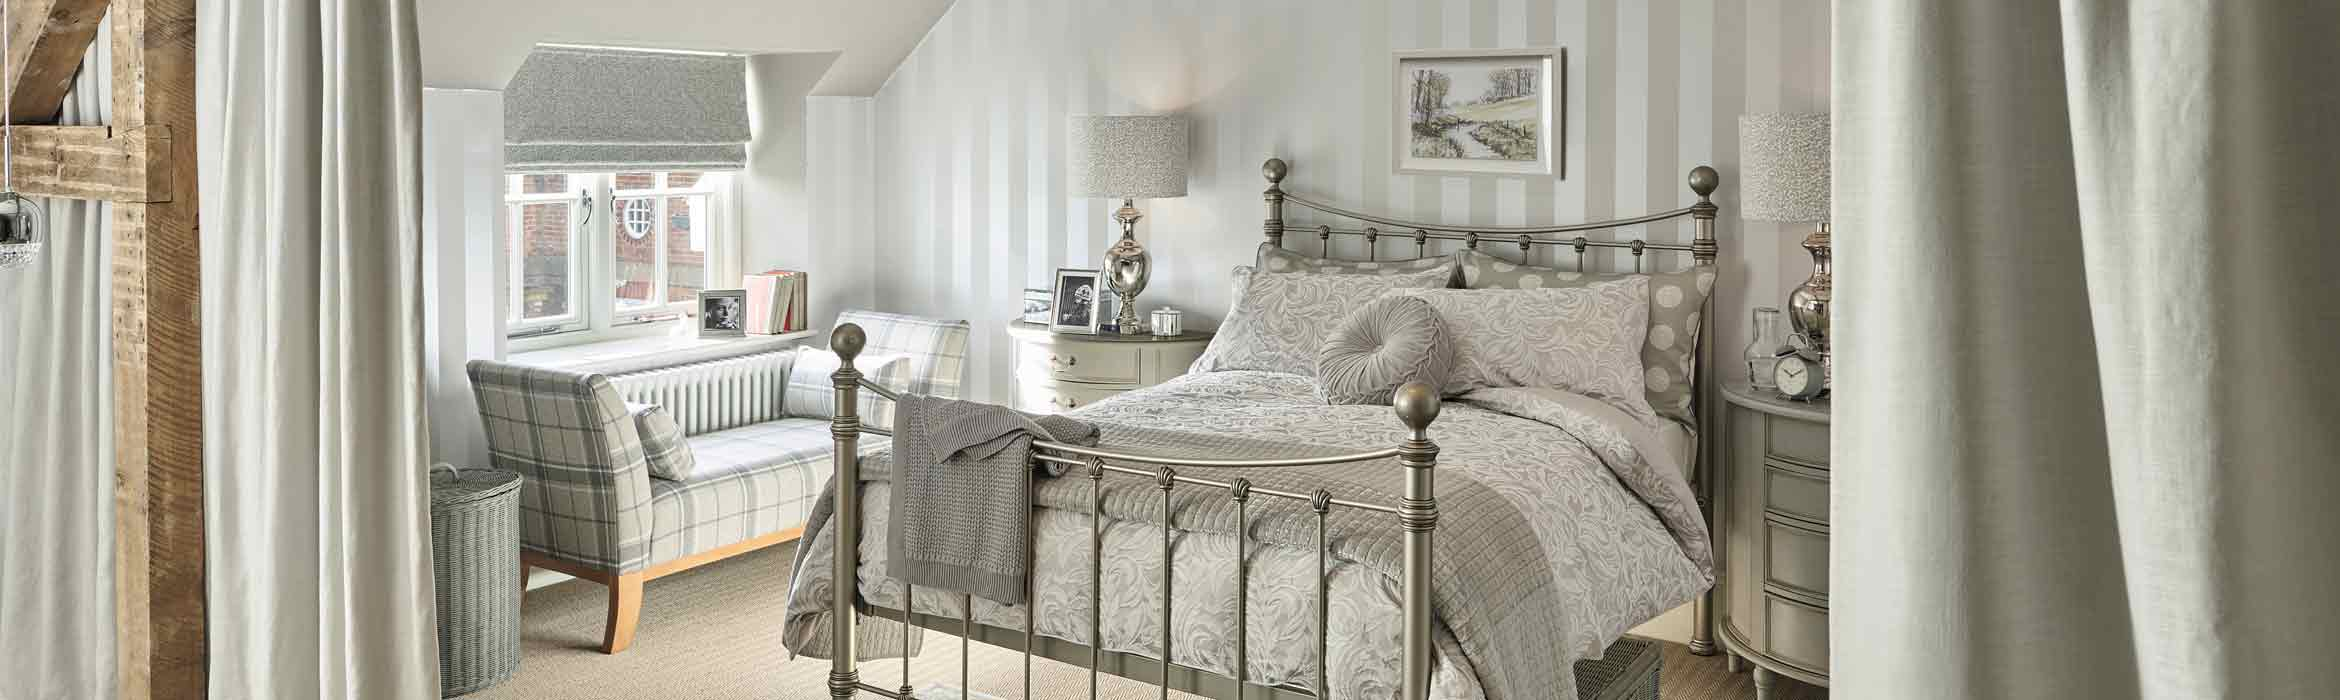 Bedroom kitted out with Laura Ashley furniture